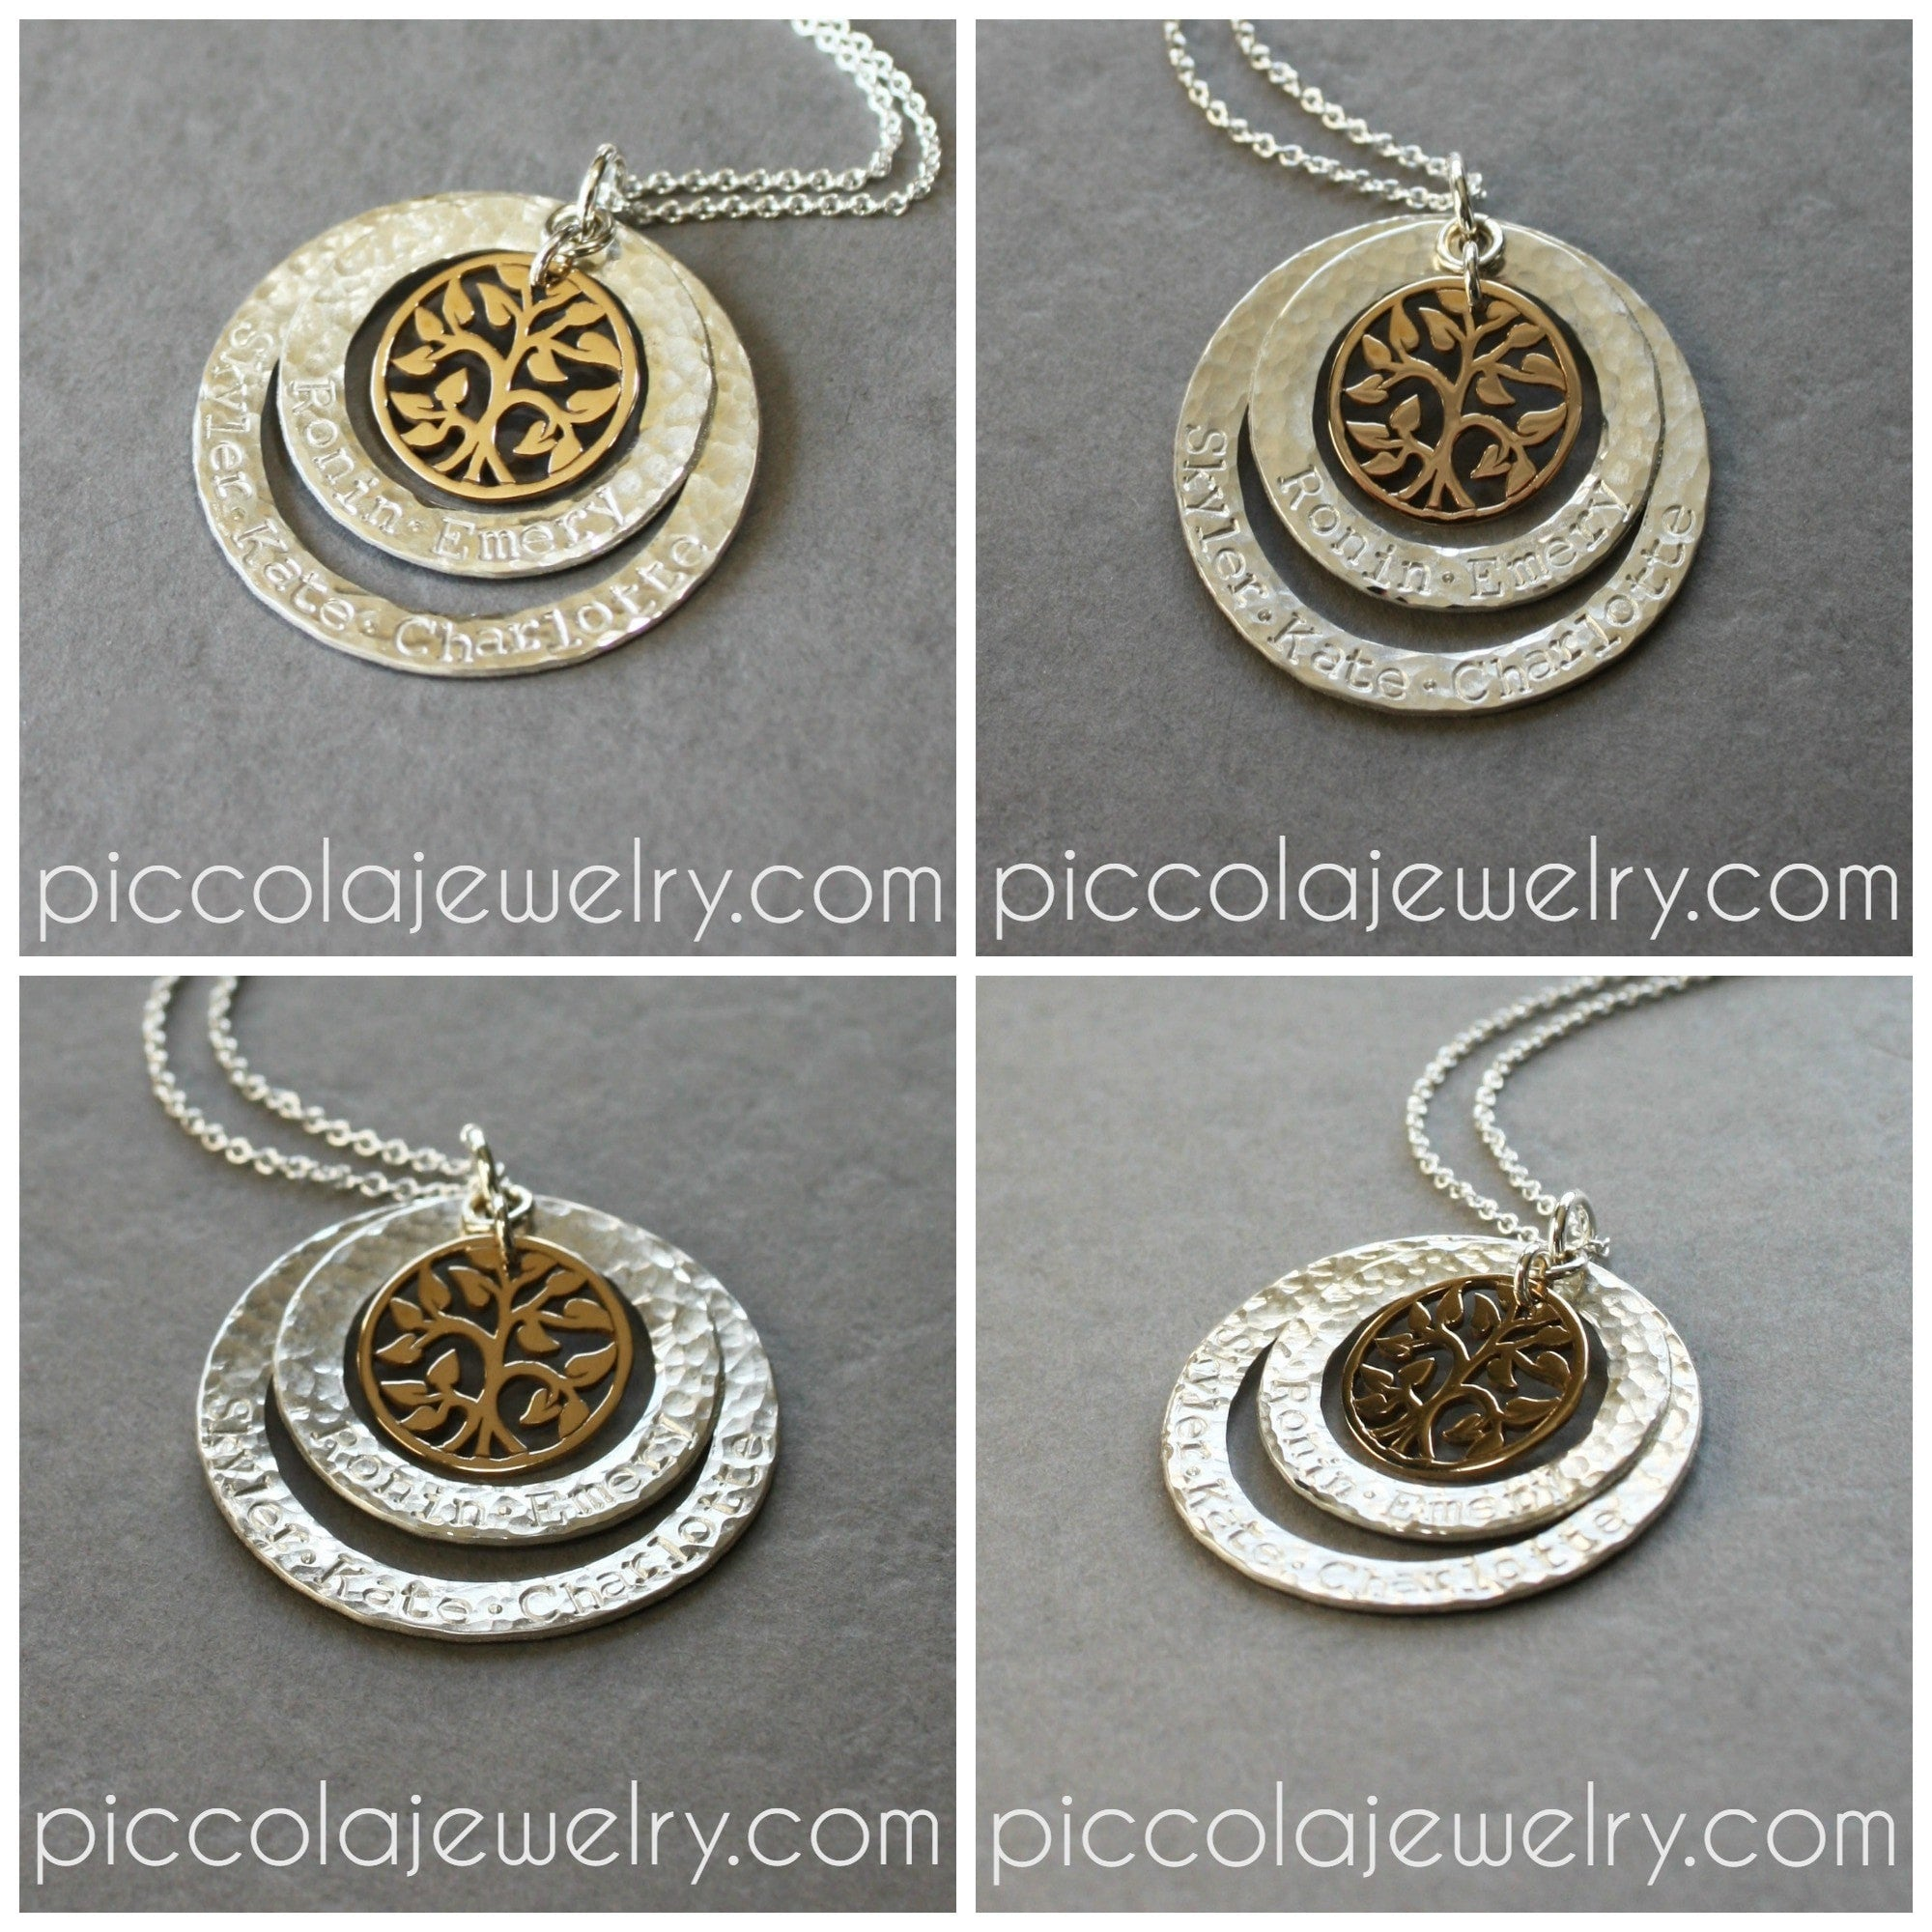 personalized necklace personalize tea washer names products kids with gift sweet jewelry for mom